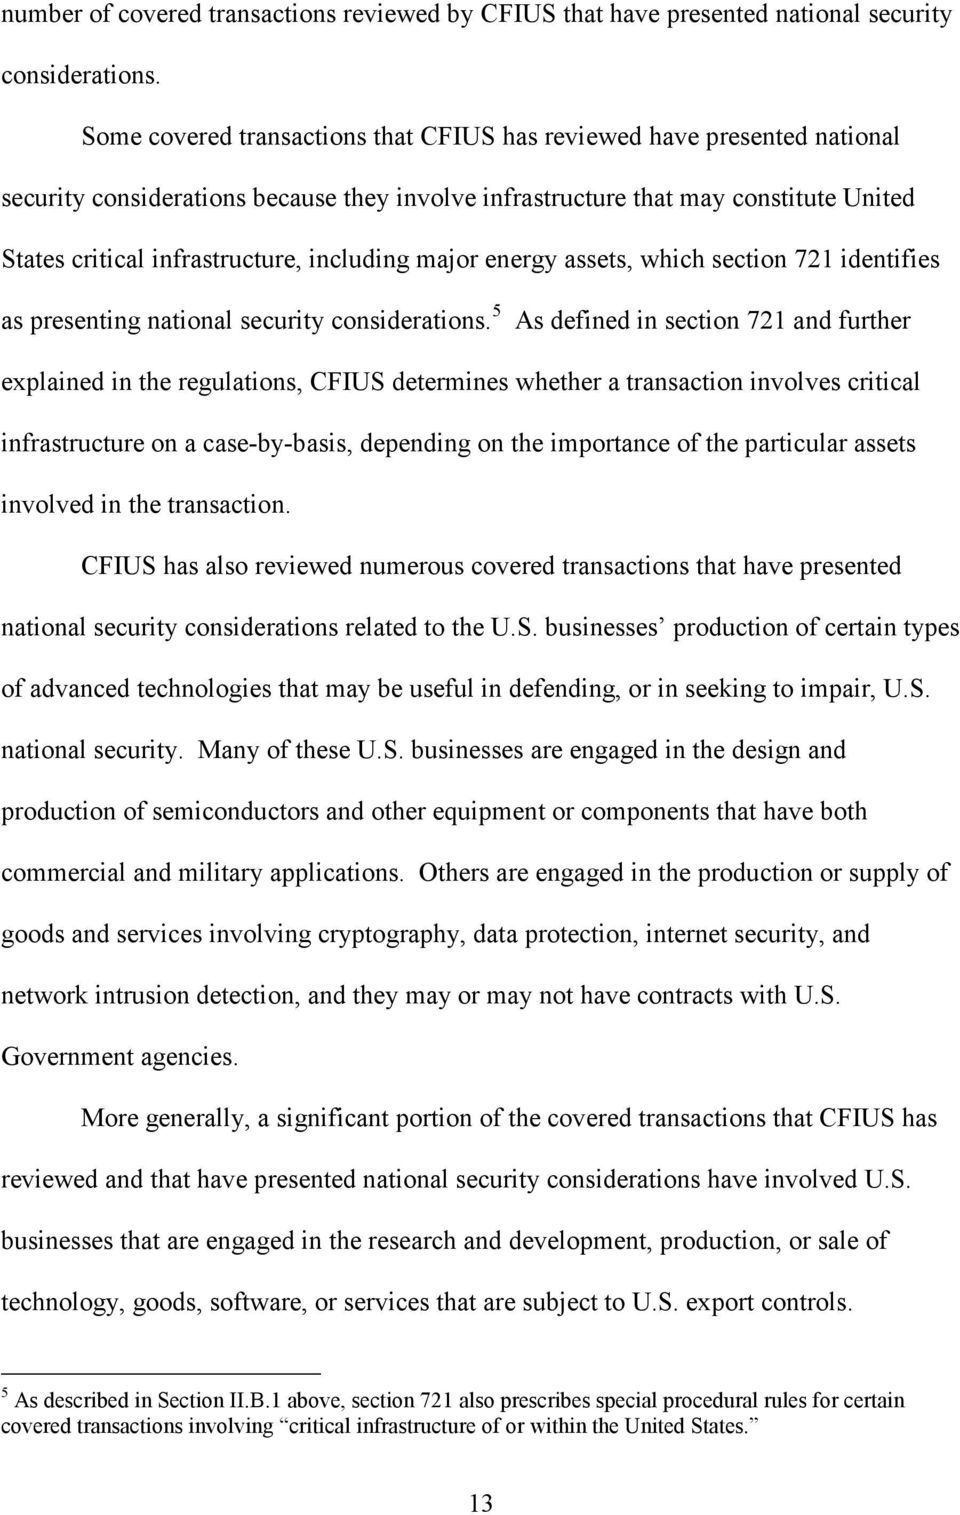 including major energy assets, which section 721 identifies as presenting national security considerations.